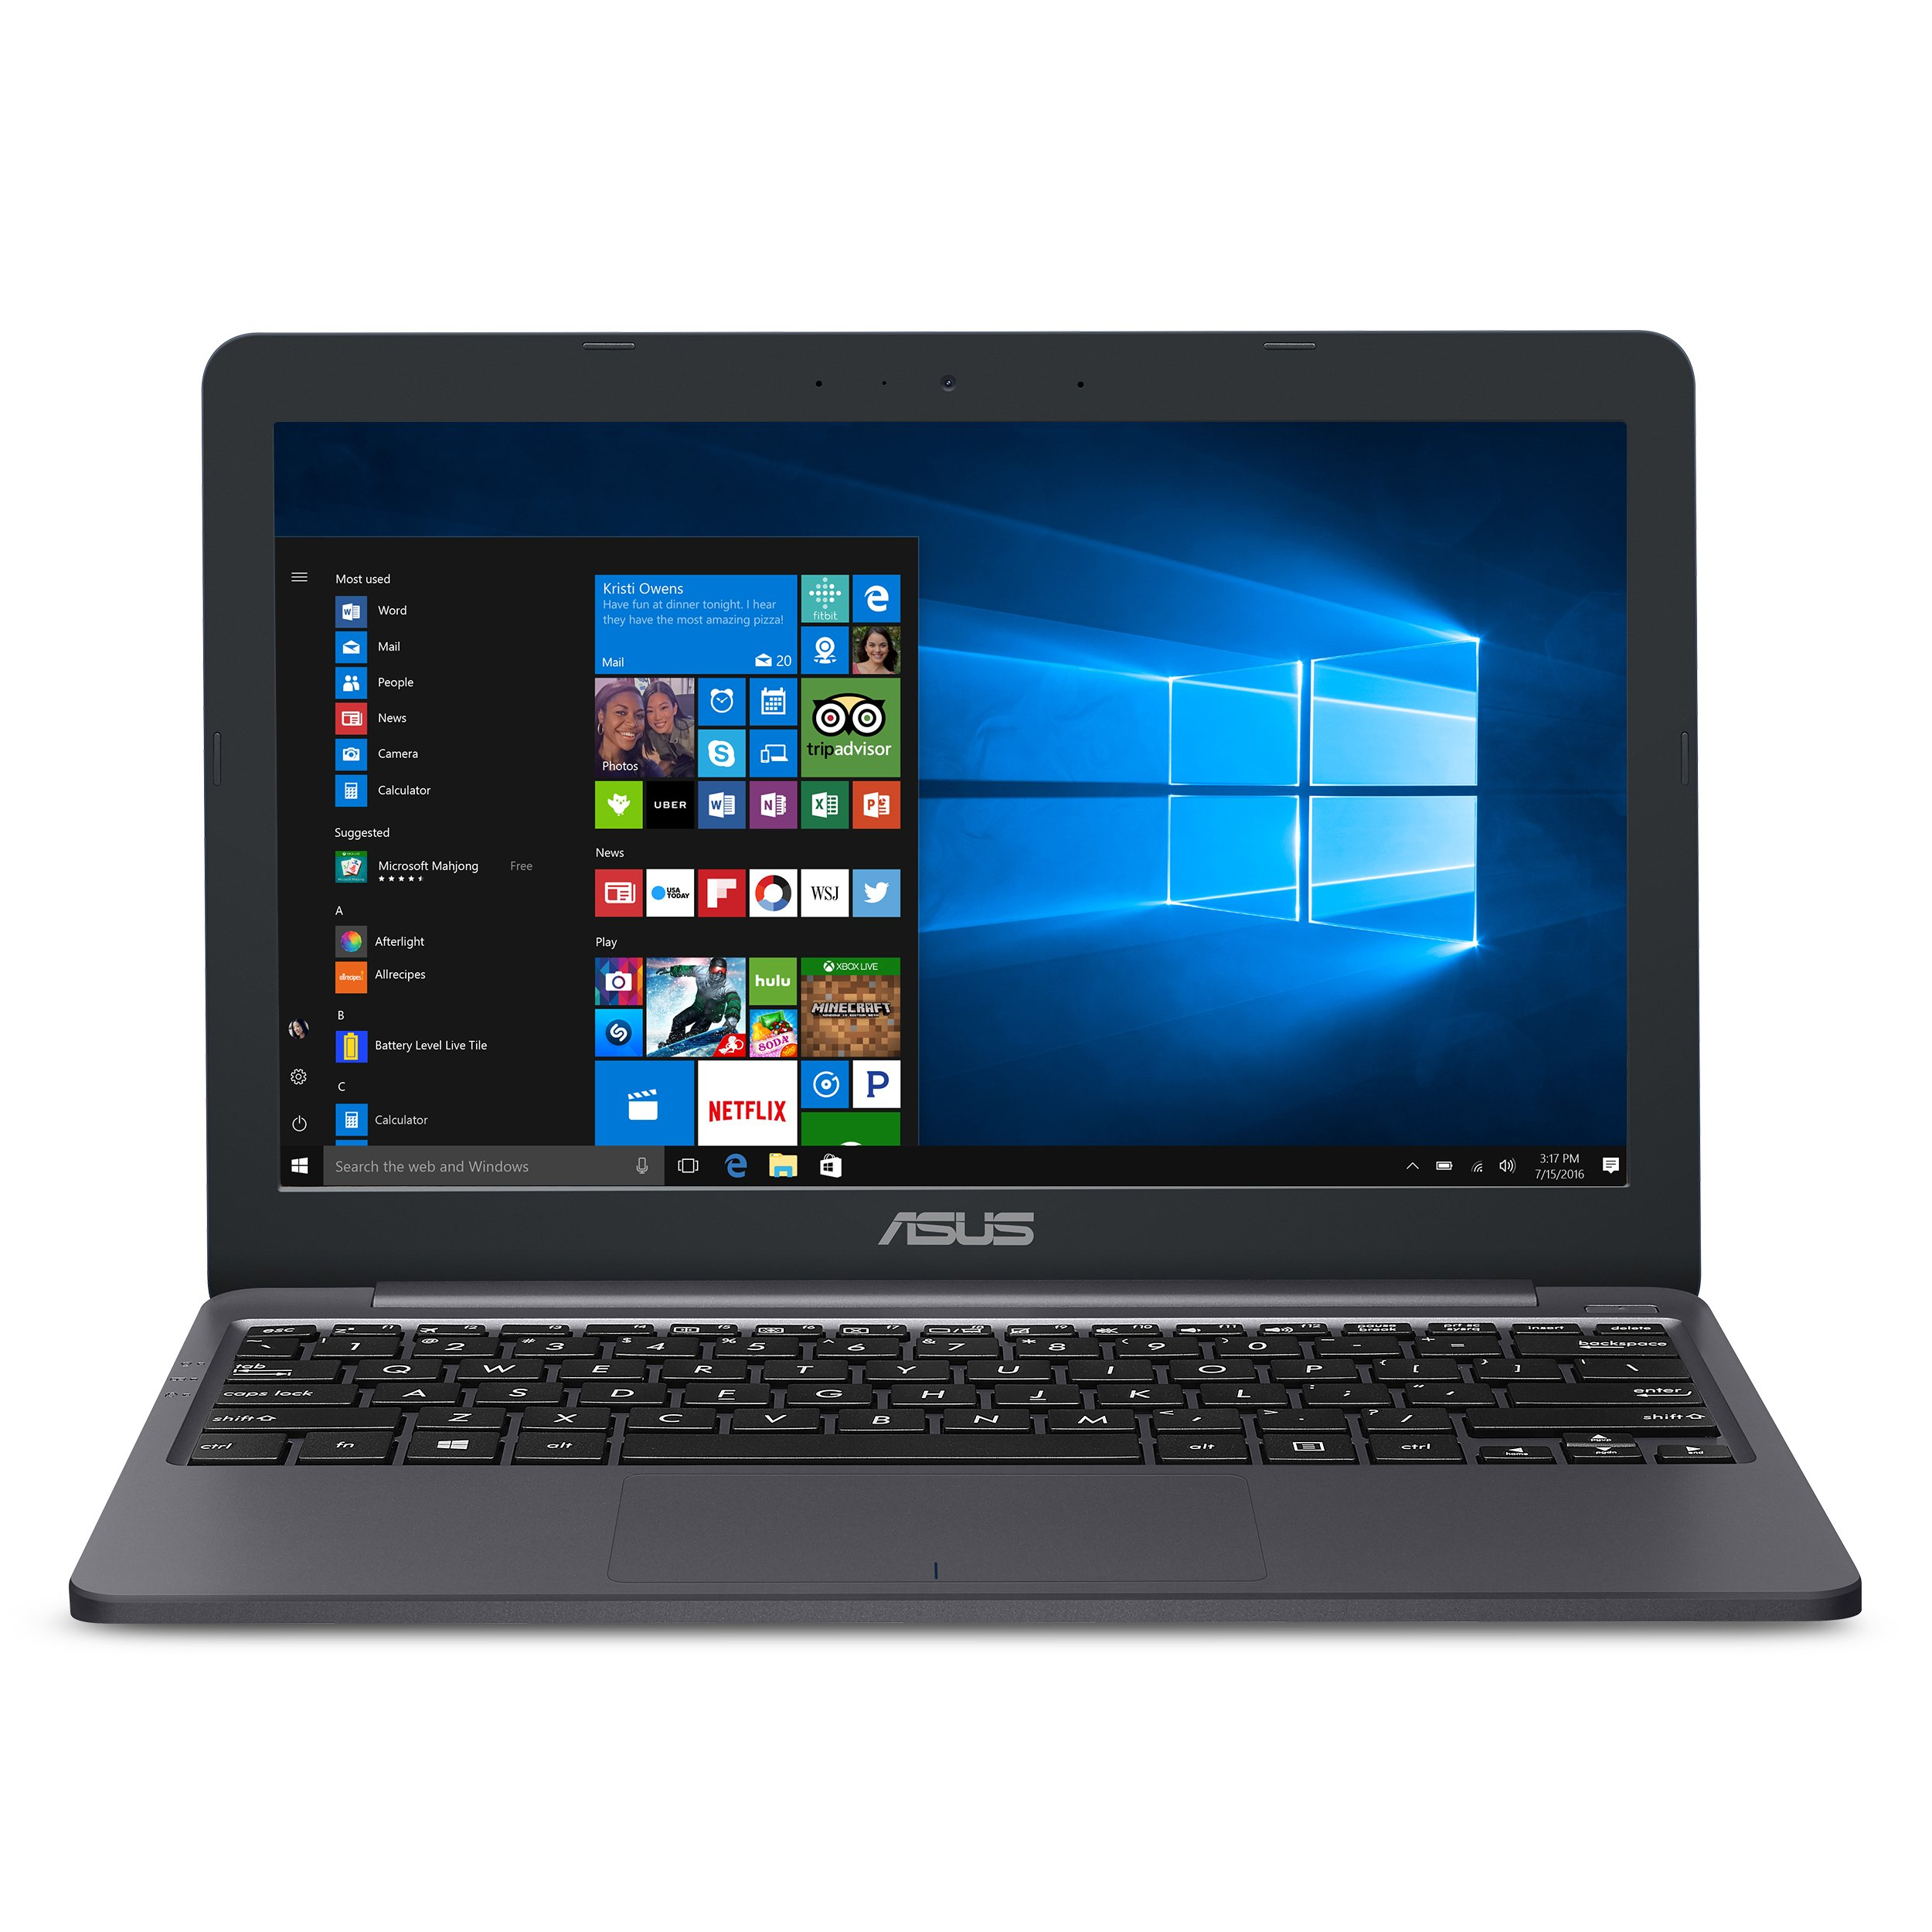 asus-vivobook-l203ma-ultra-thin-laptop-116-hd-intel-celeron-n4000-processor-up-to-26-ghz-4gb-ram-64gb-emmc-usb-c-windows-10-in-s-mode-one-year-of-microsoft-office-365-l203ma-ds04